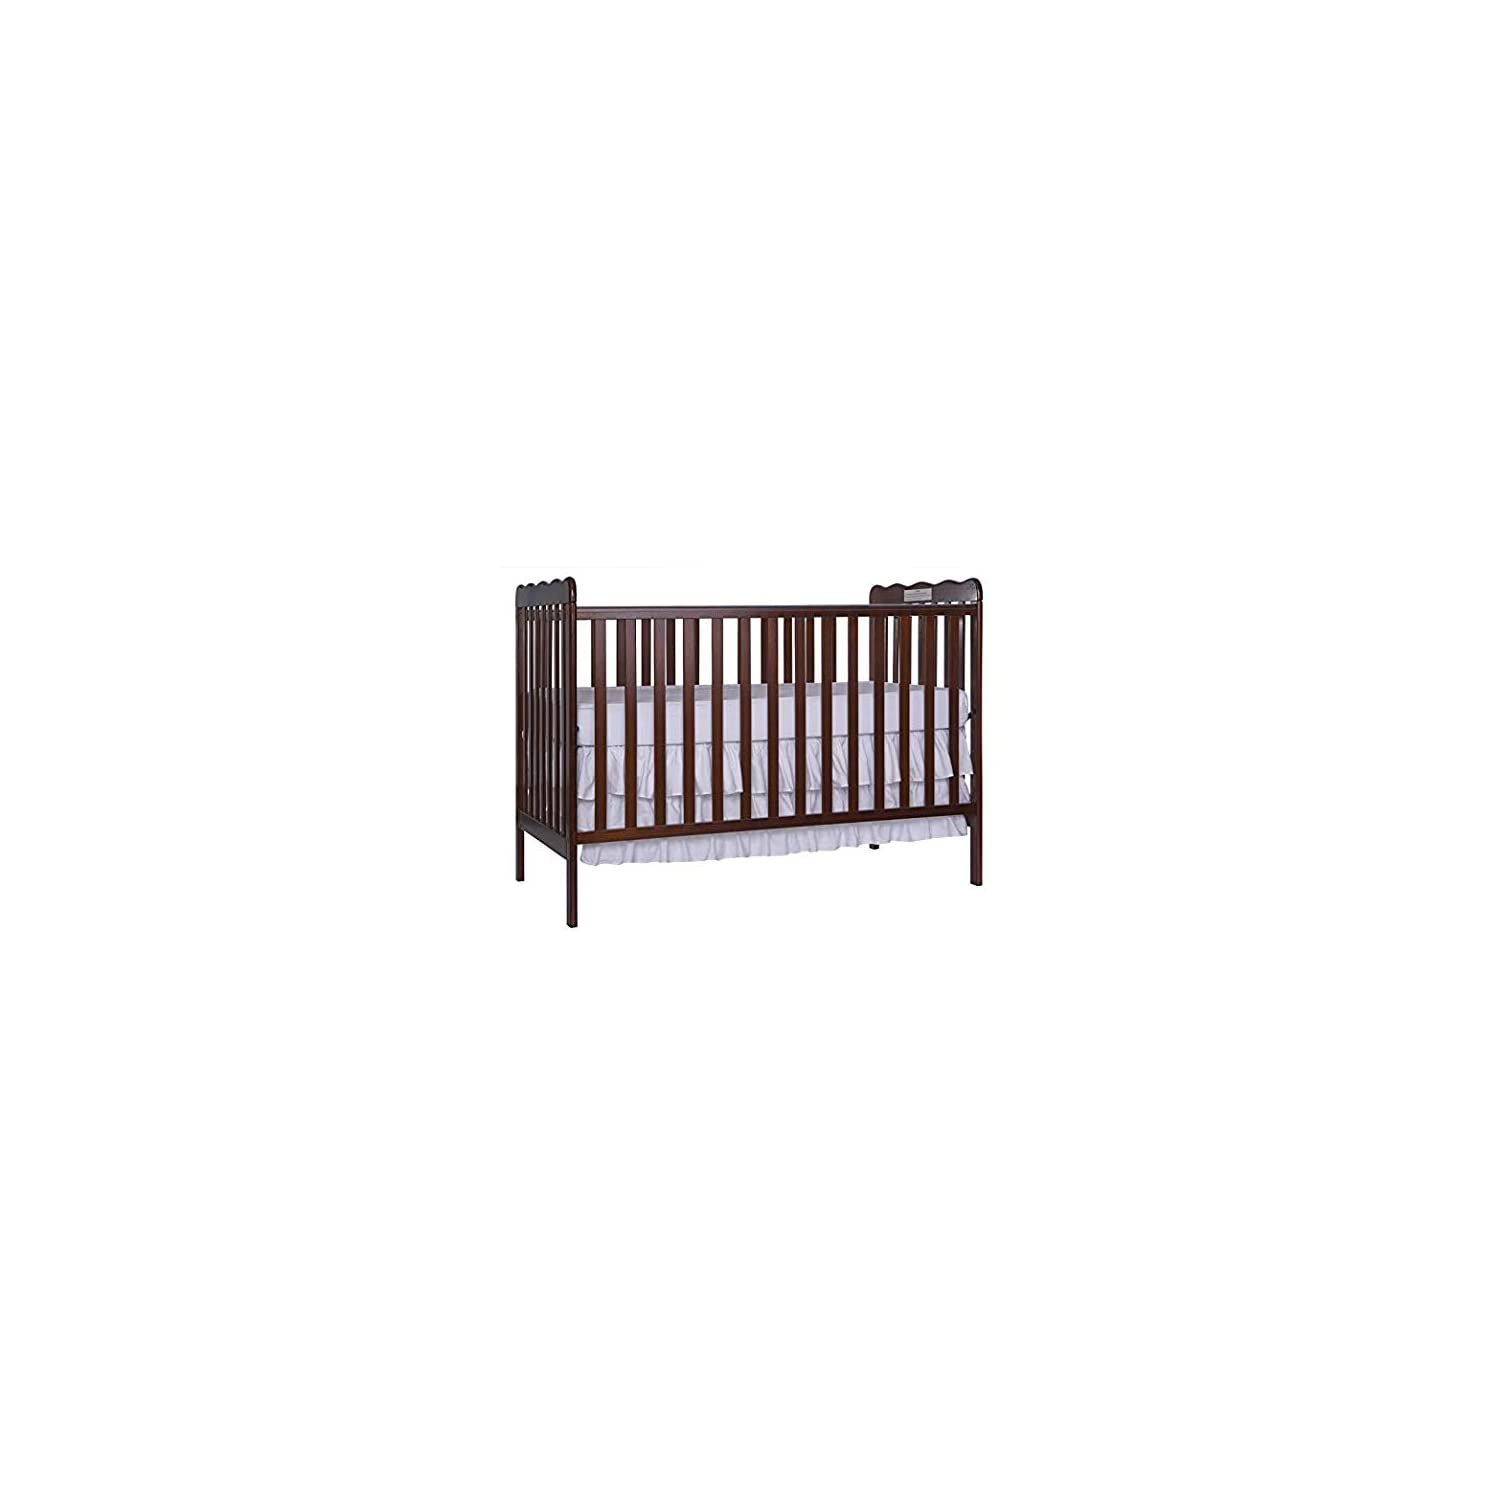 Dream On Me, Carson Classic 3 in 1 Convertible Crib in Espresso with Spring Crib and Toddler Bed Mattress, Twilight